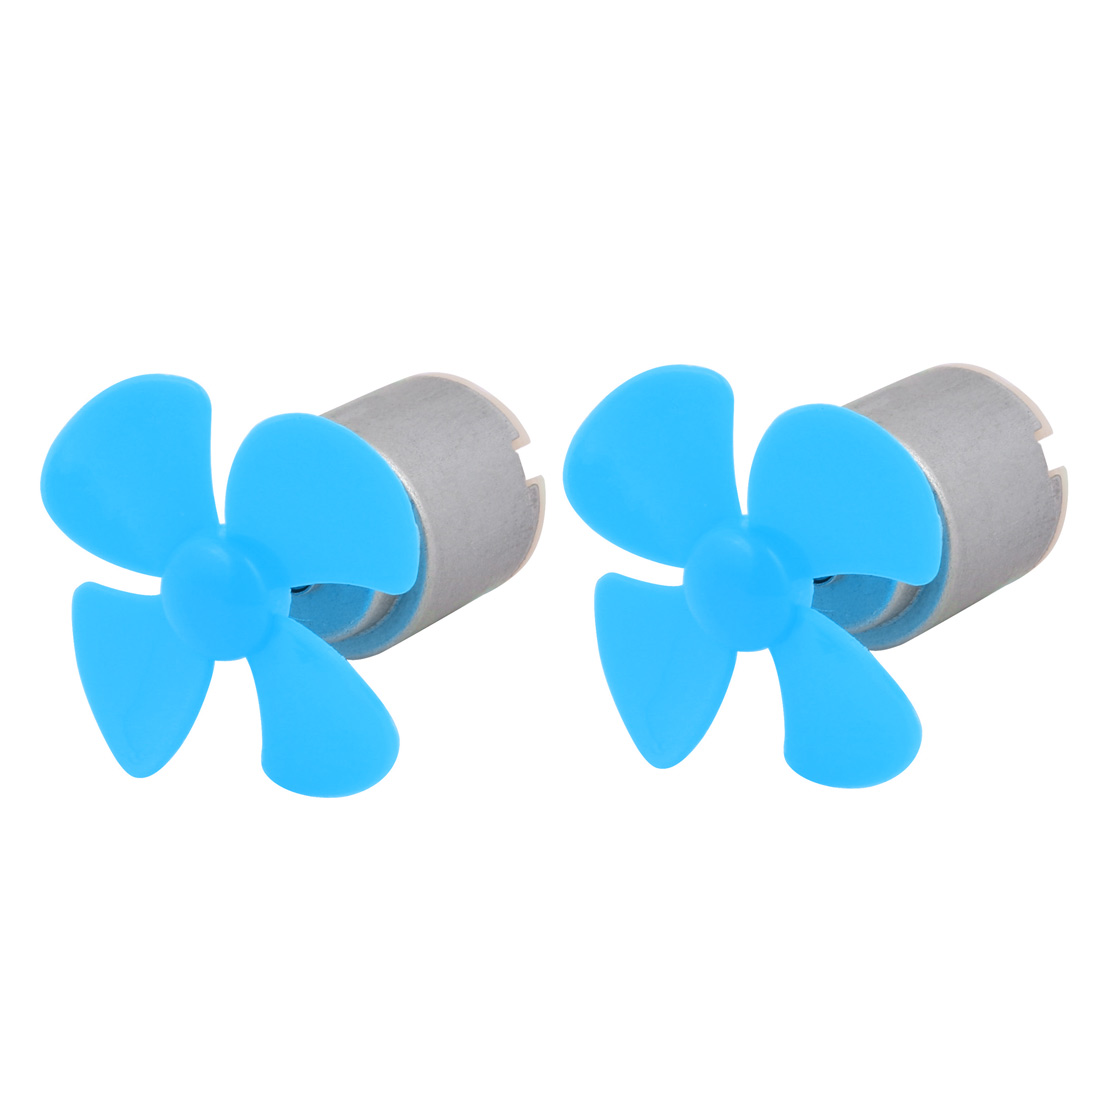 2Pcs DC 3V 0.13A 21500RPM Large Torque Motor 4-Vane 40mm Dia Propeller Blue for RC Model